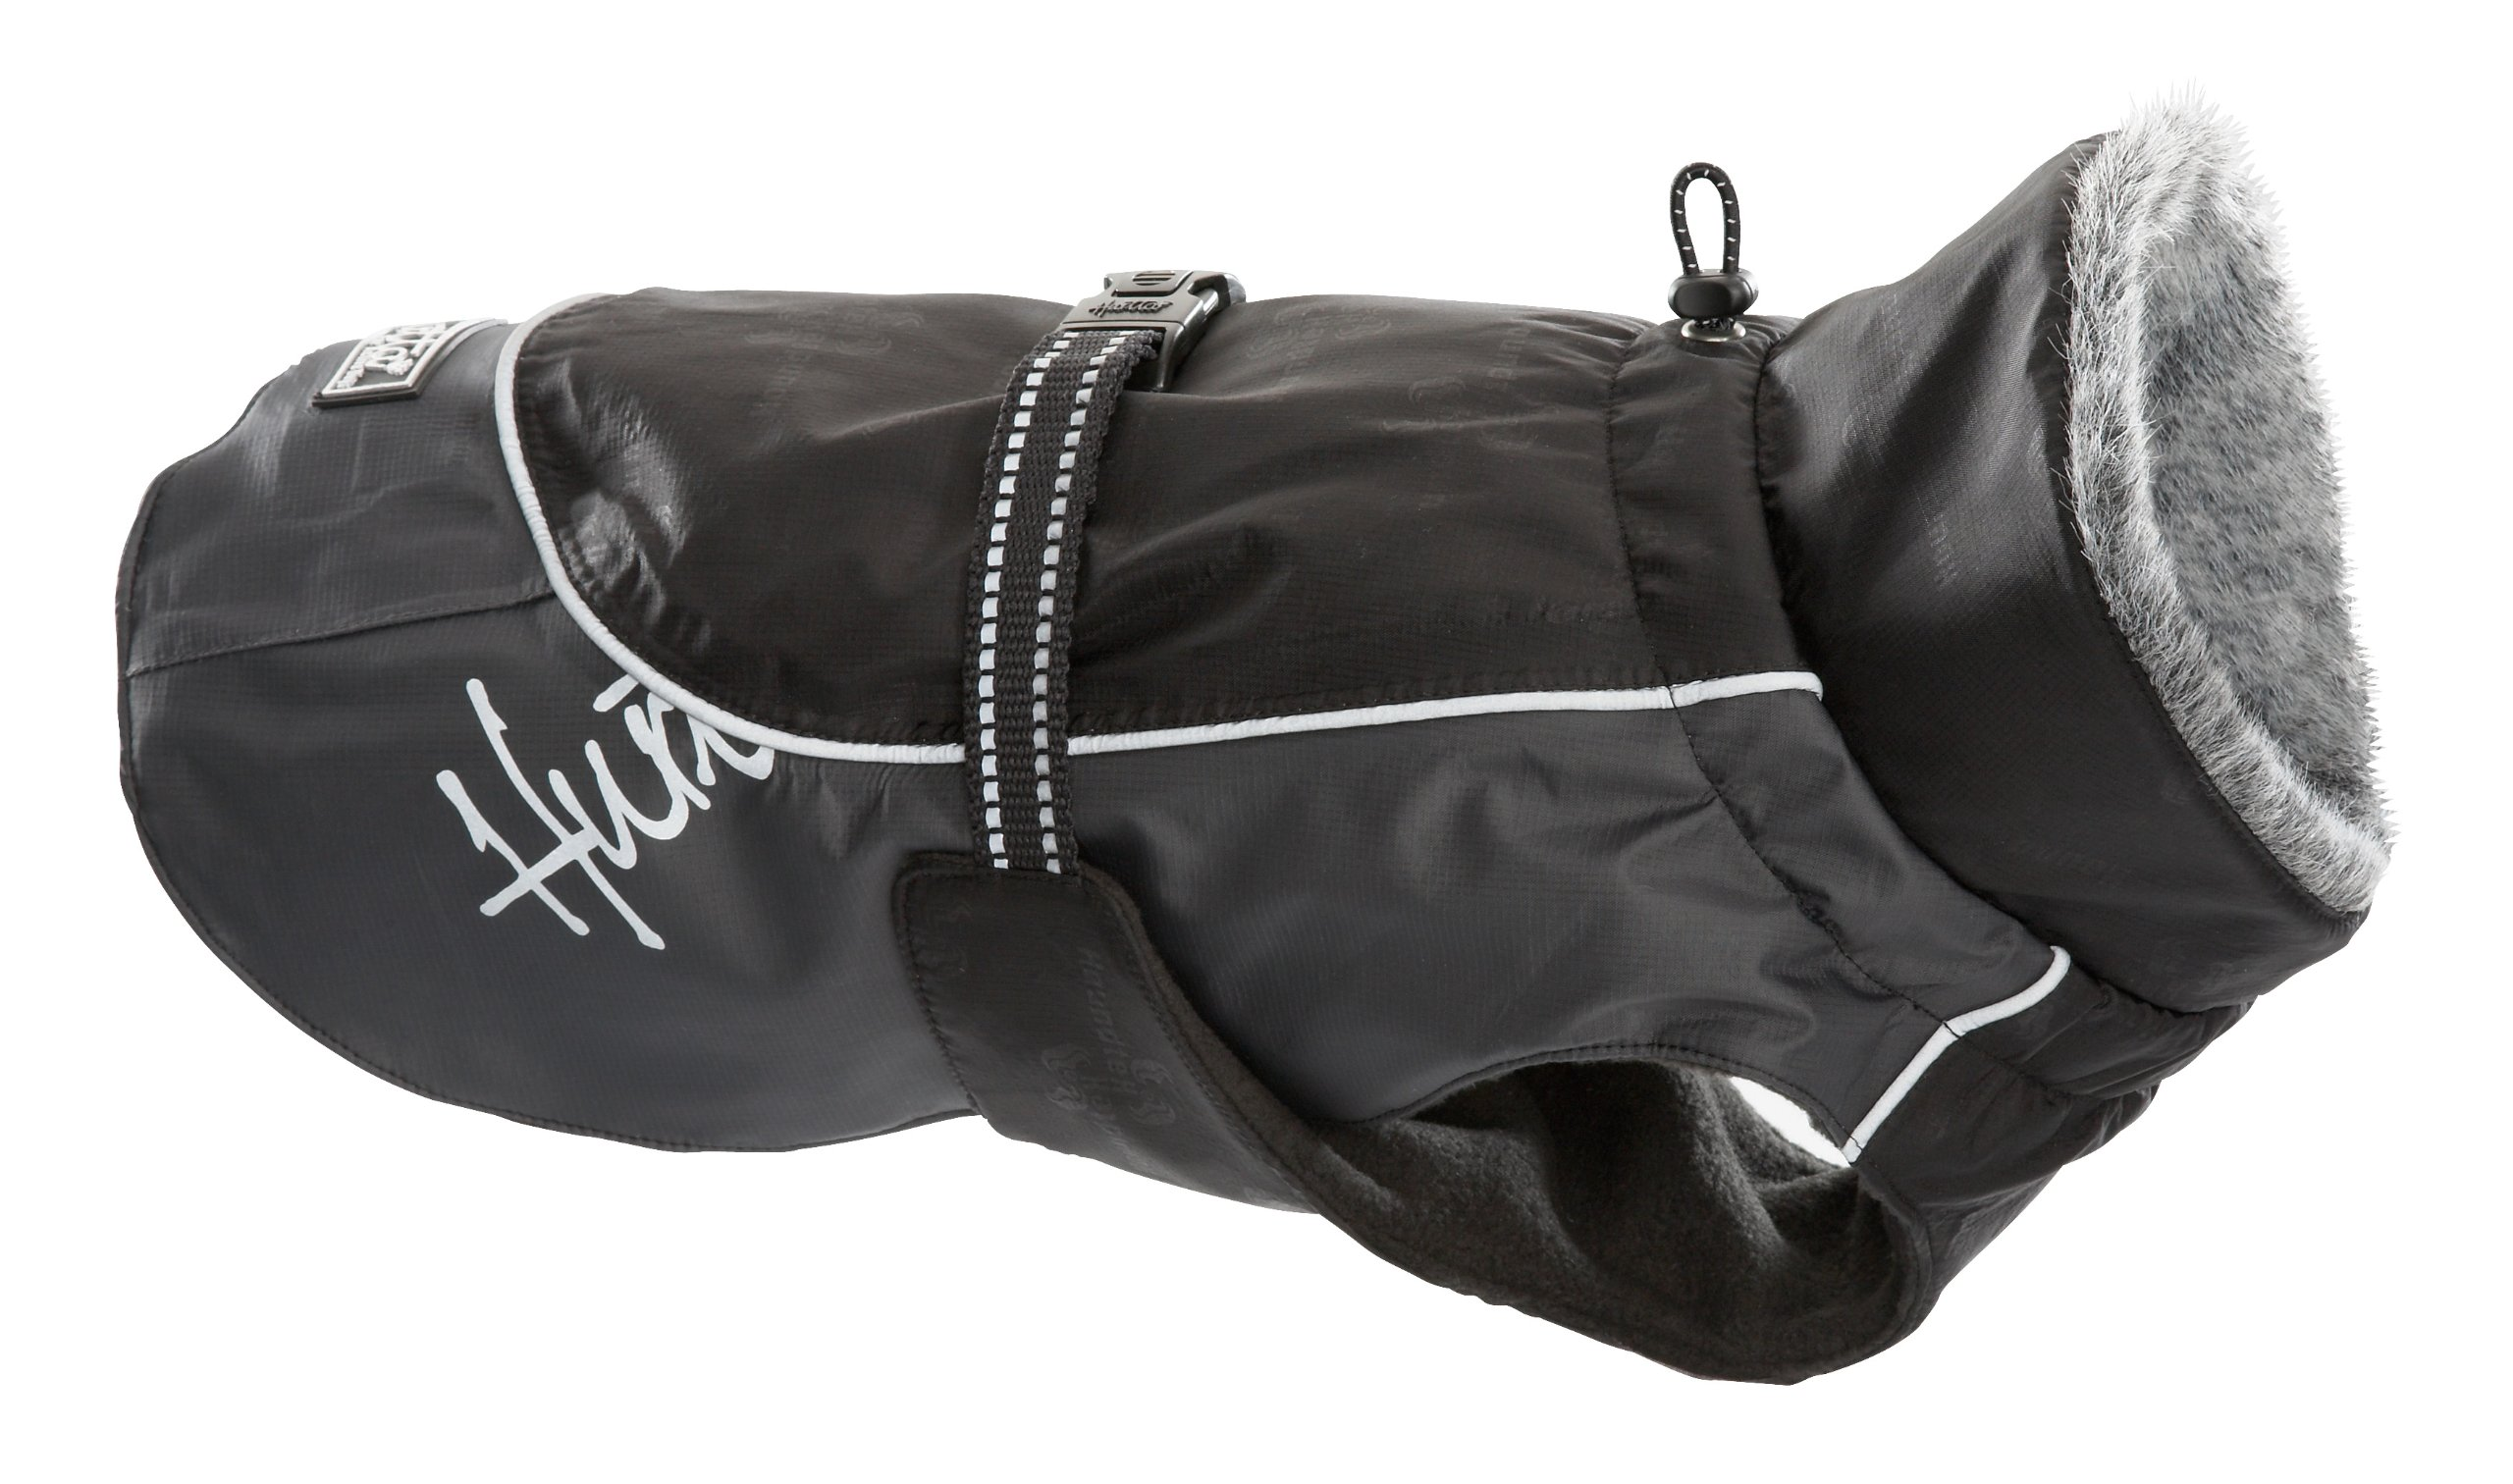 Hurtta Pet Collection Winter Jacket, 9-Inch Length, 12-14-Inch Neck, 14-18-Inch Chest, Black